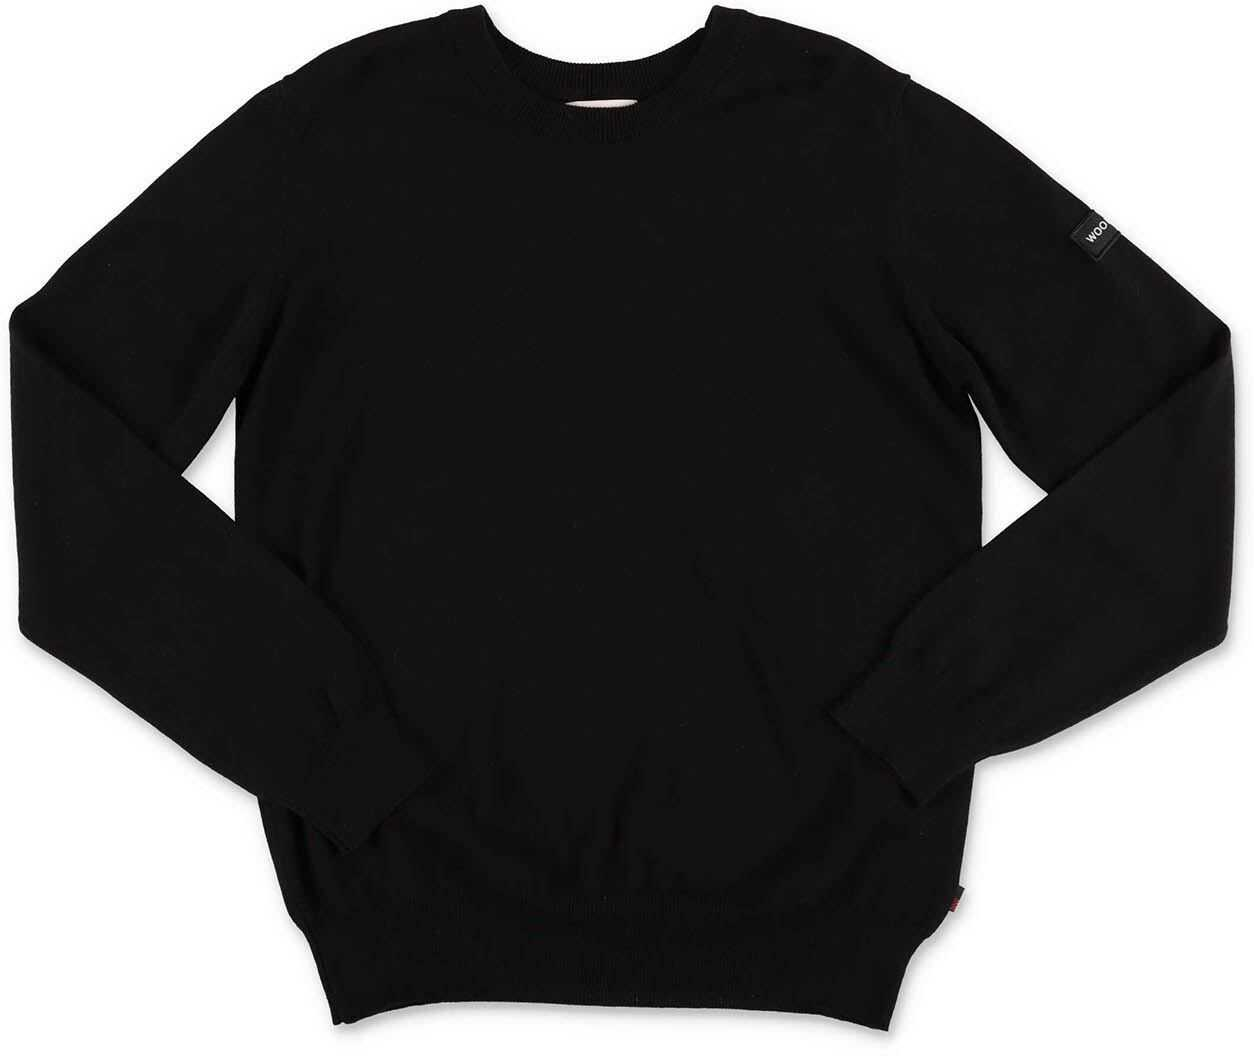 Woolrich Black Sweater With Logo Black